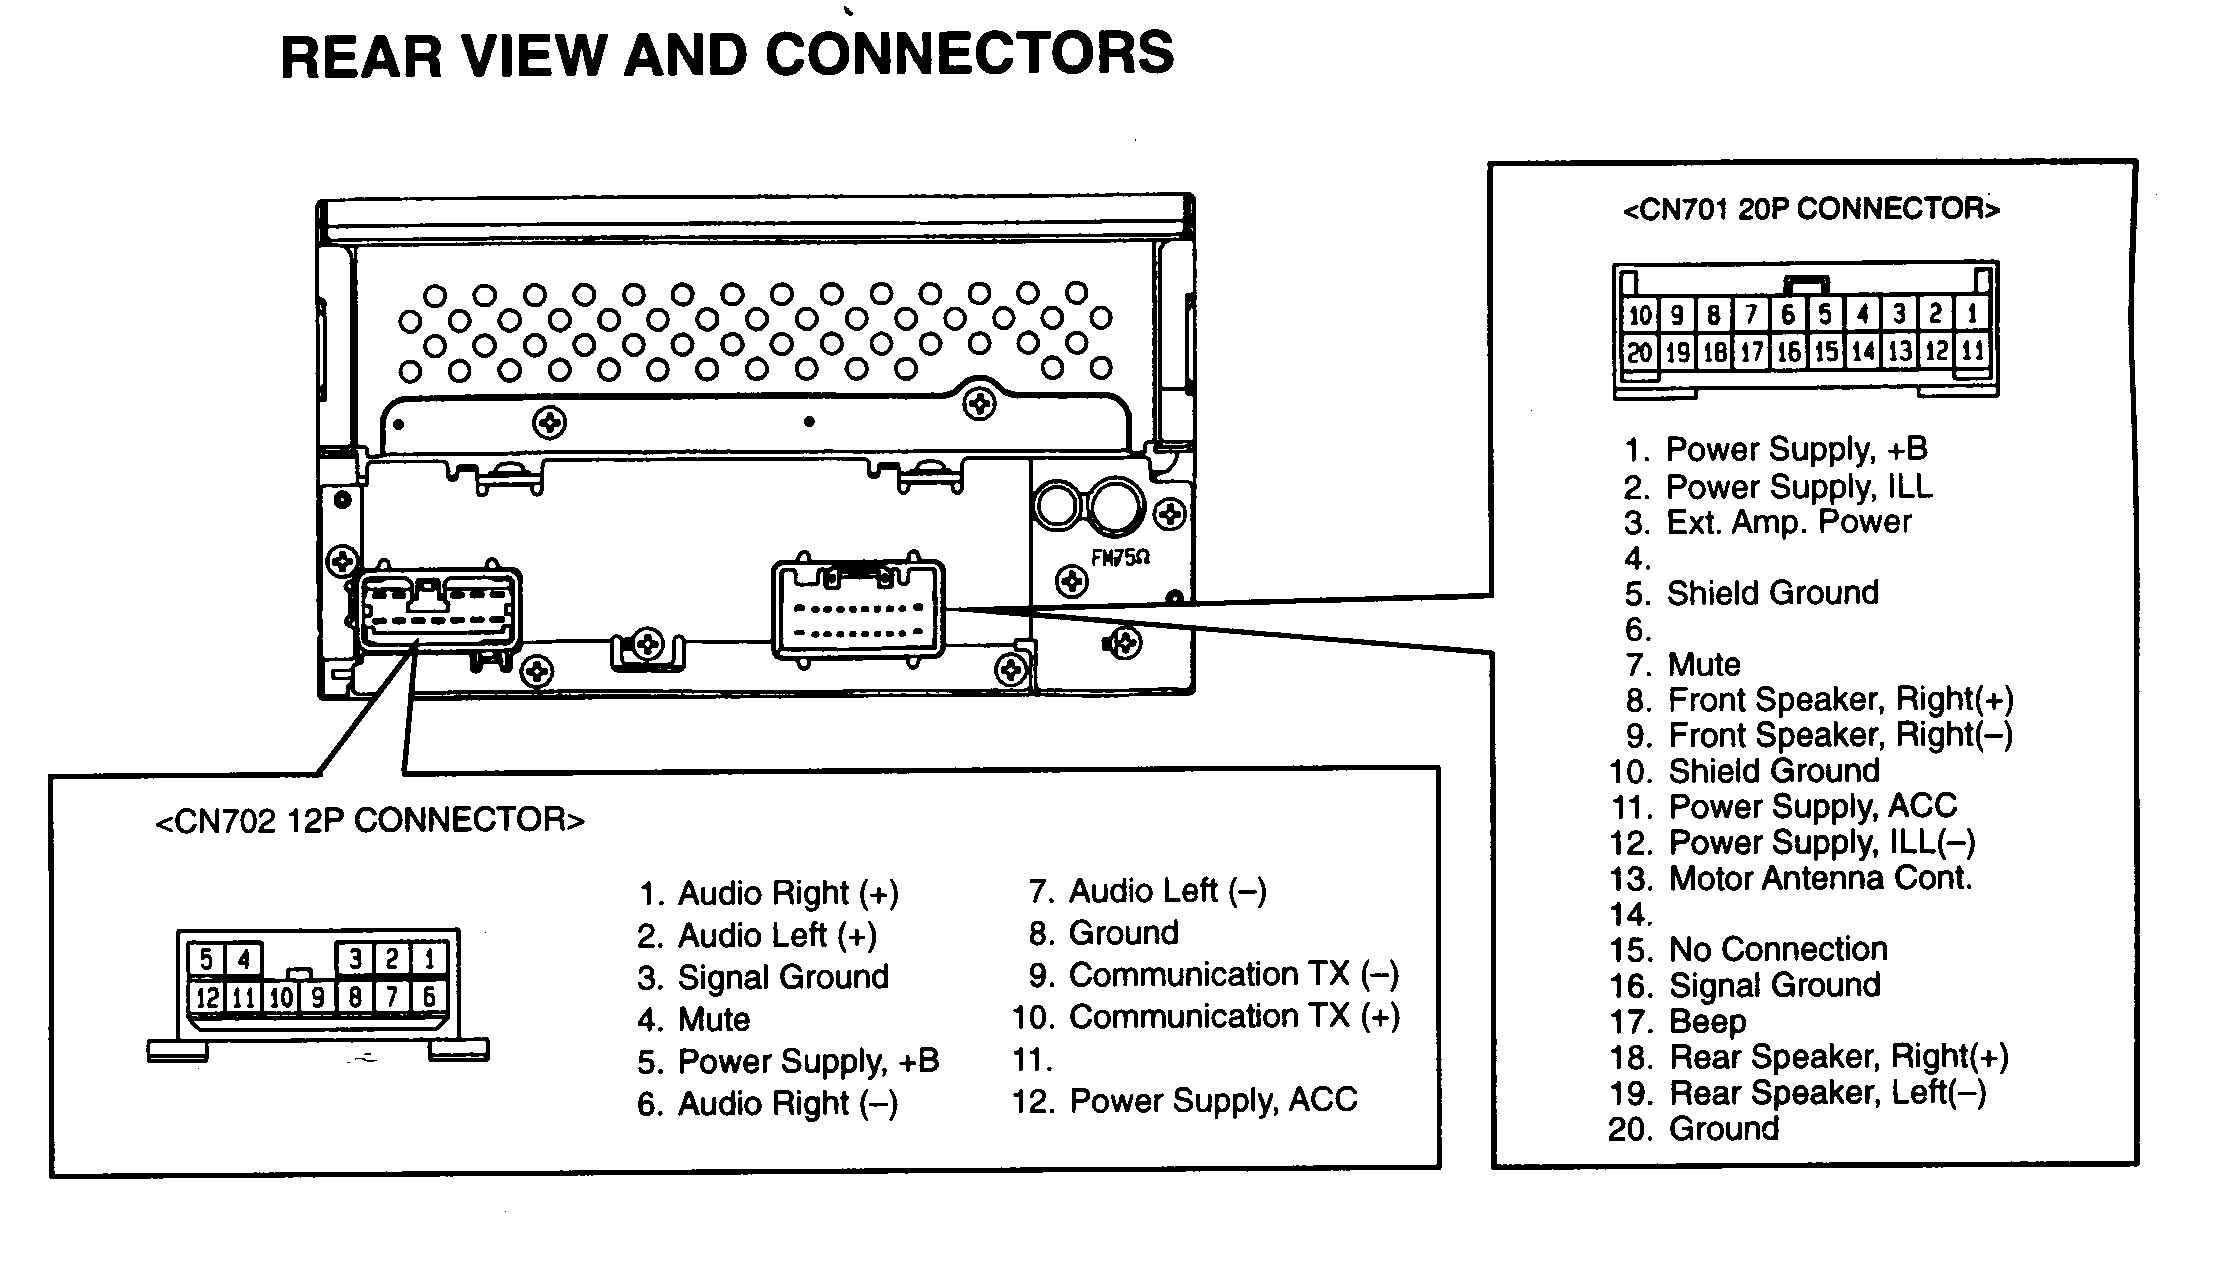 toyota stereo wiring diagram 9 12 manualuniverse co u2022car stereo help wire color code wire diagrams and wire code rh carstereoremoval toyota echo